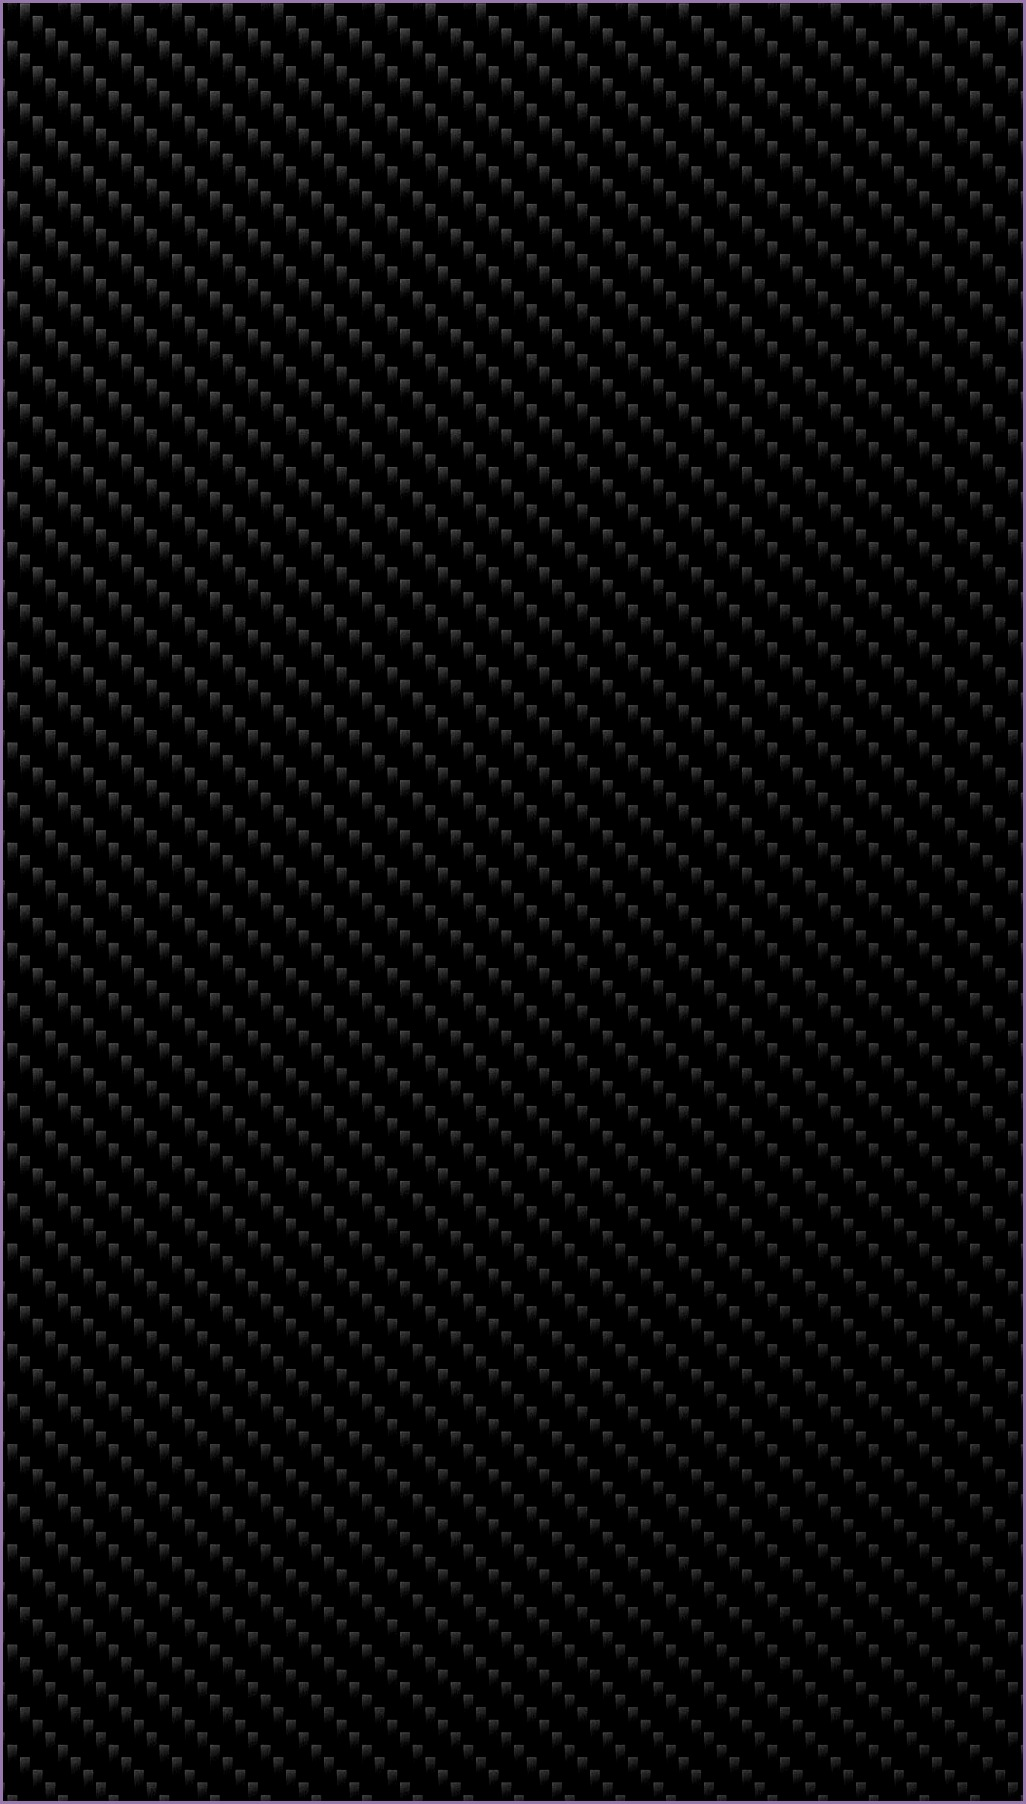 iphone 6 carbon fiber wallpaper